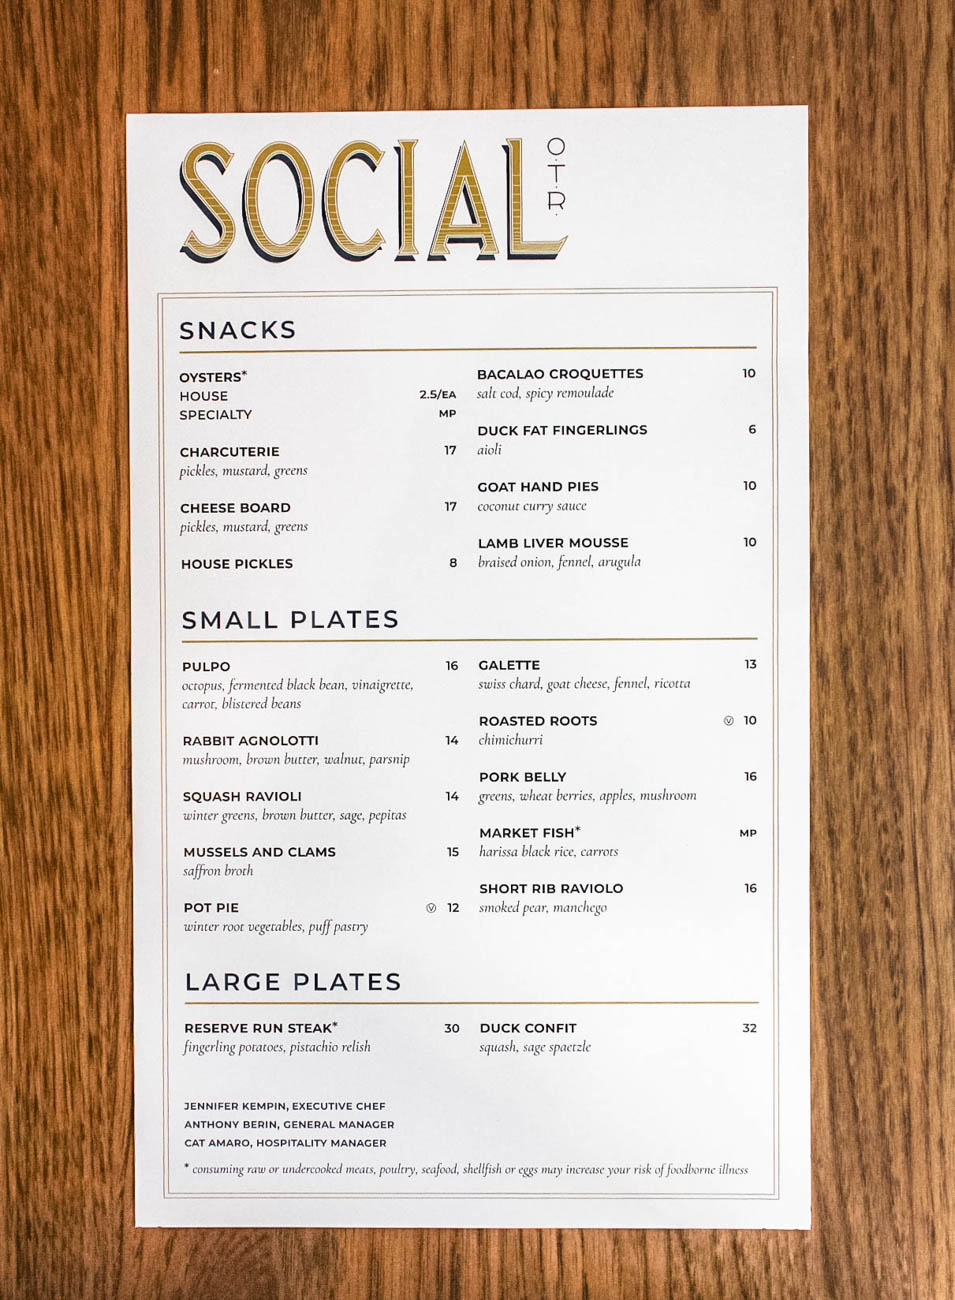 Social OTR is a non-profit restaurant that not only creates high-end dishes, but creates job opportunities and specialized training for people with barriers to employment. It is a part of the Corporation for Findlay Market, a 501(c)(3) non-profit organization. They also partner with CityLink Center, which is a cooperative, social services model on the West End. The restaurant's back of house is staffed from the program and work under Executive Chef Jen Kempin to continue their culinary education with experience in the restaurant. ADDRESS: 1819 Elm Street (45202) / Image: Erin Glass // Published: 3.27.19